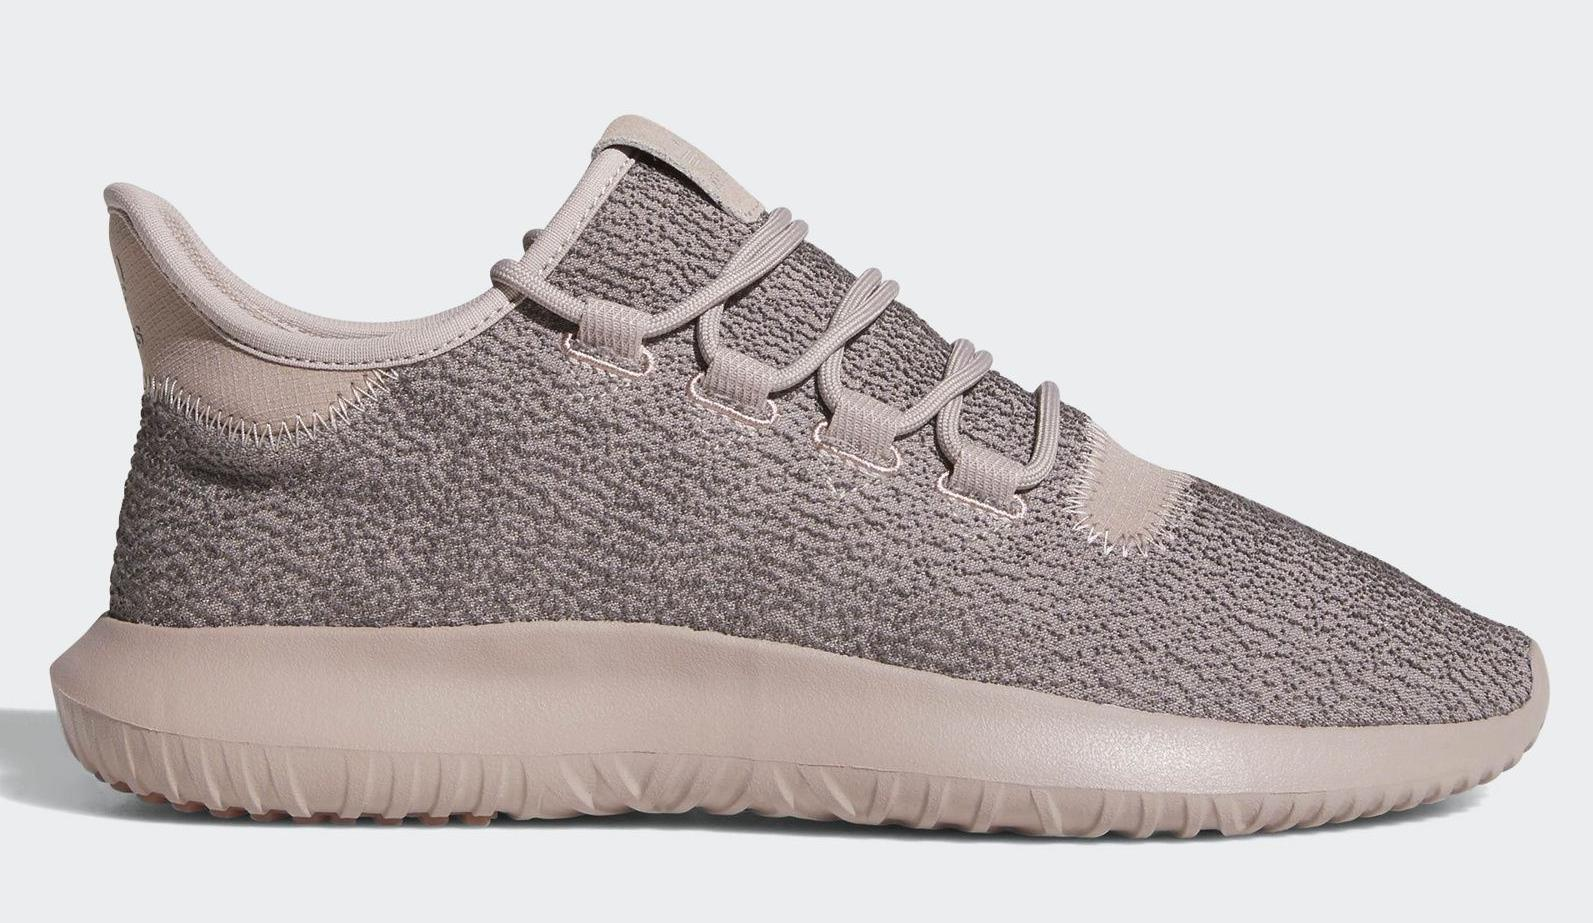 newest 4017a d3a7c Adidas Tubular Shadow Men s Casual Athletic Shoes - Grey   Raw Pink ...